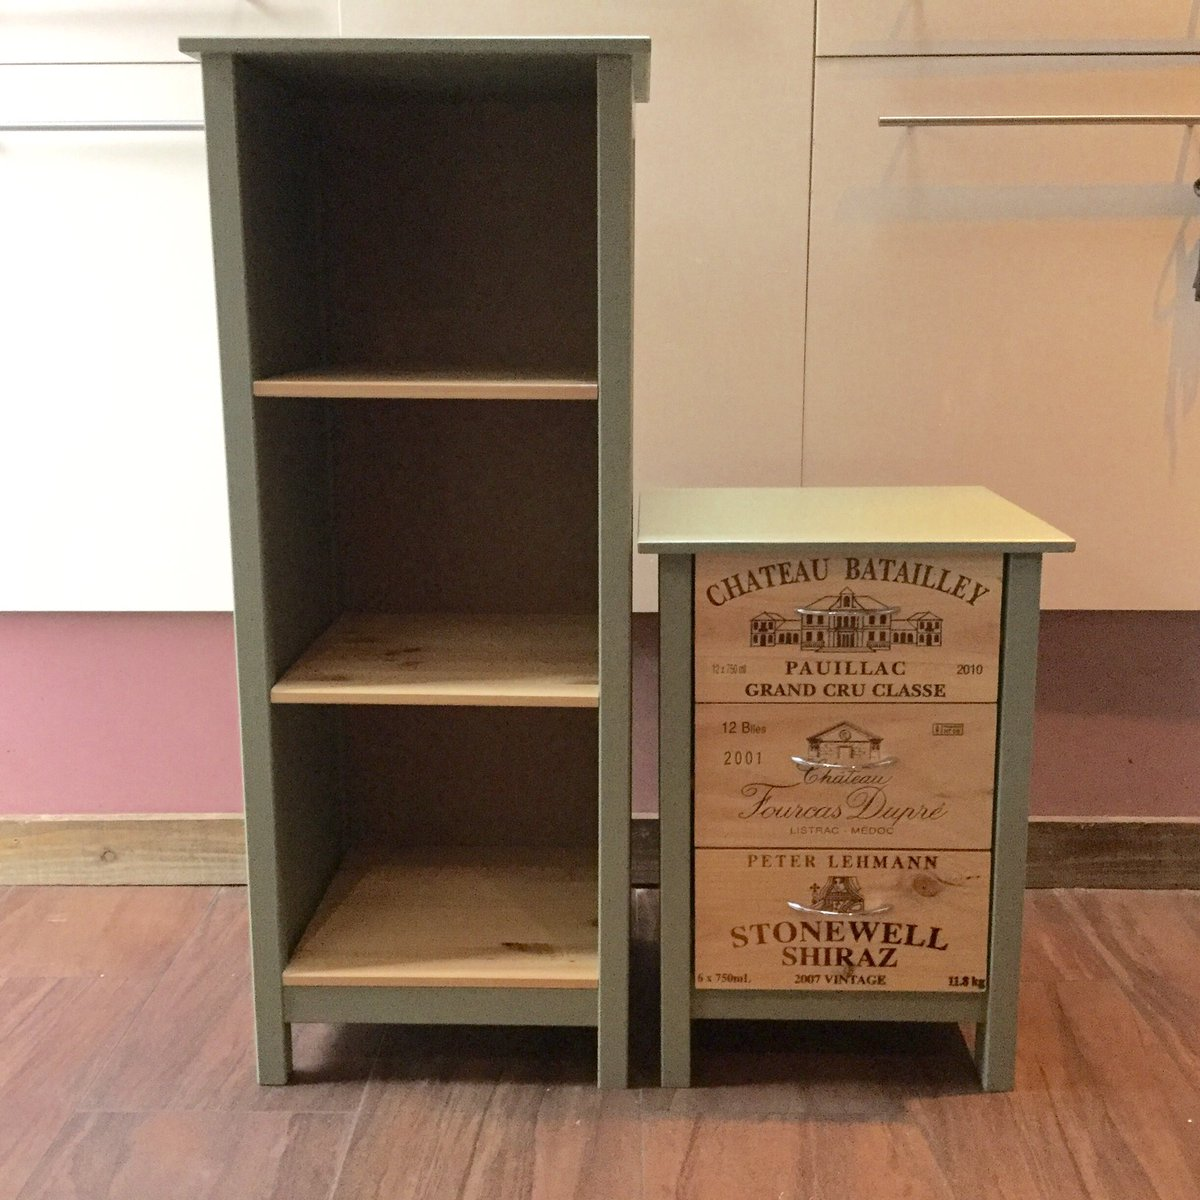 The wine crate co thewinecrateco twitter What to do with wine crates